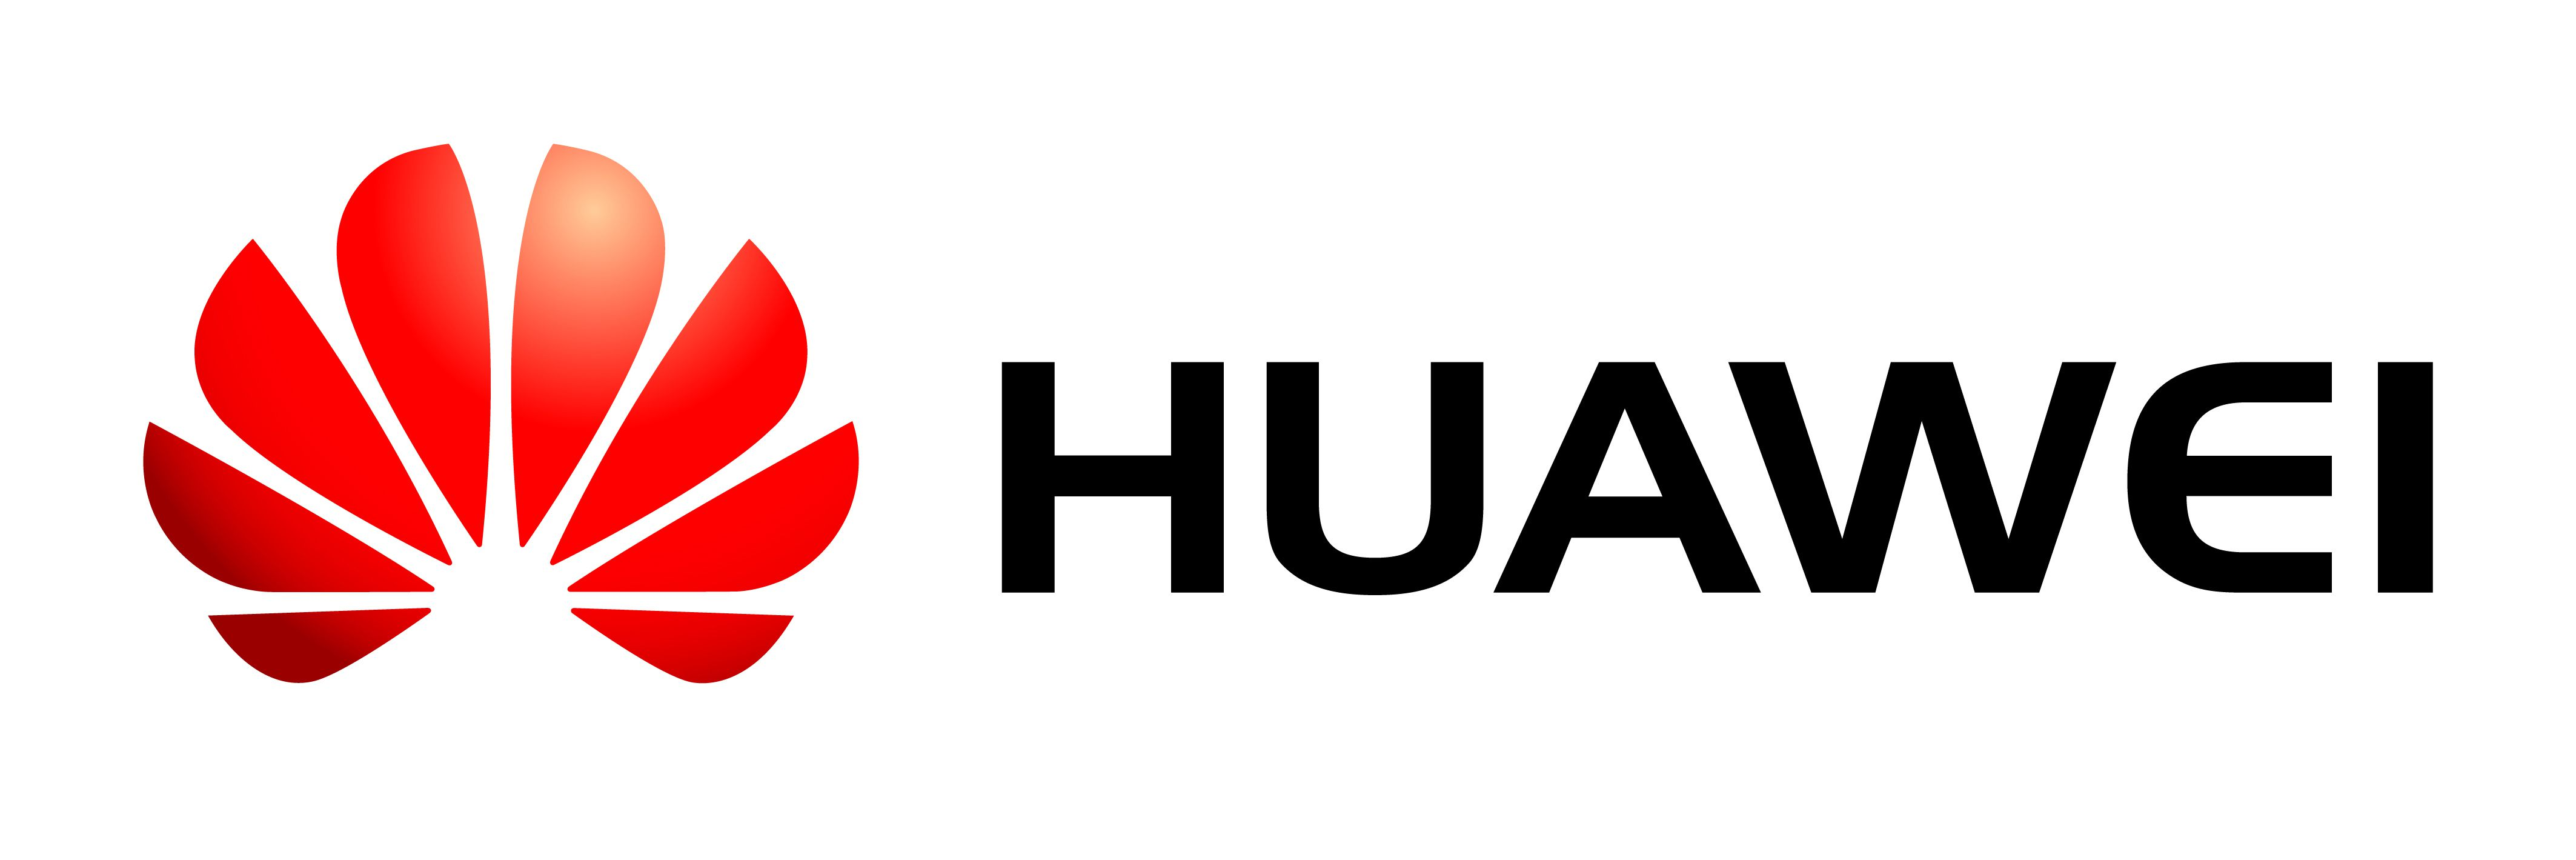 huawei logo partner gross